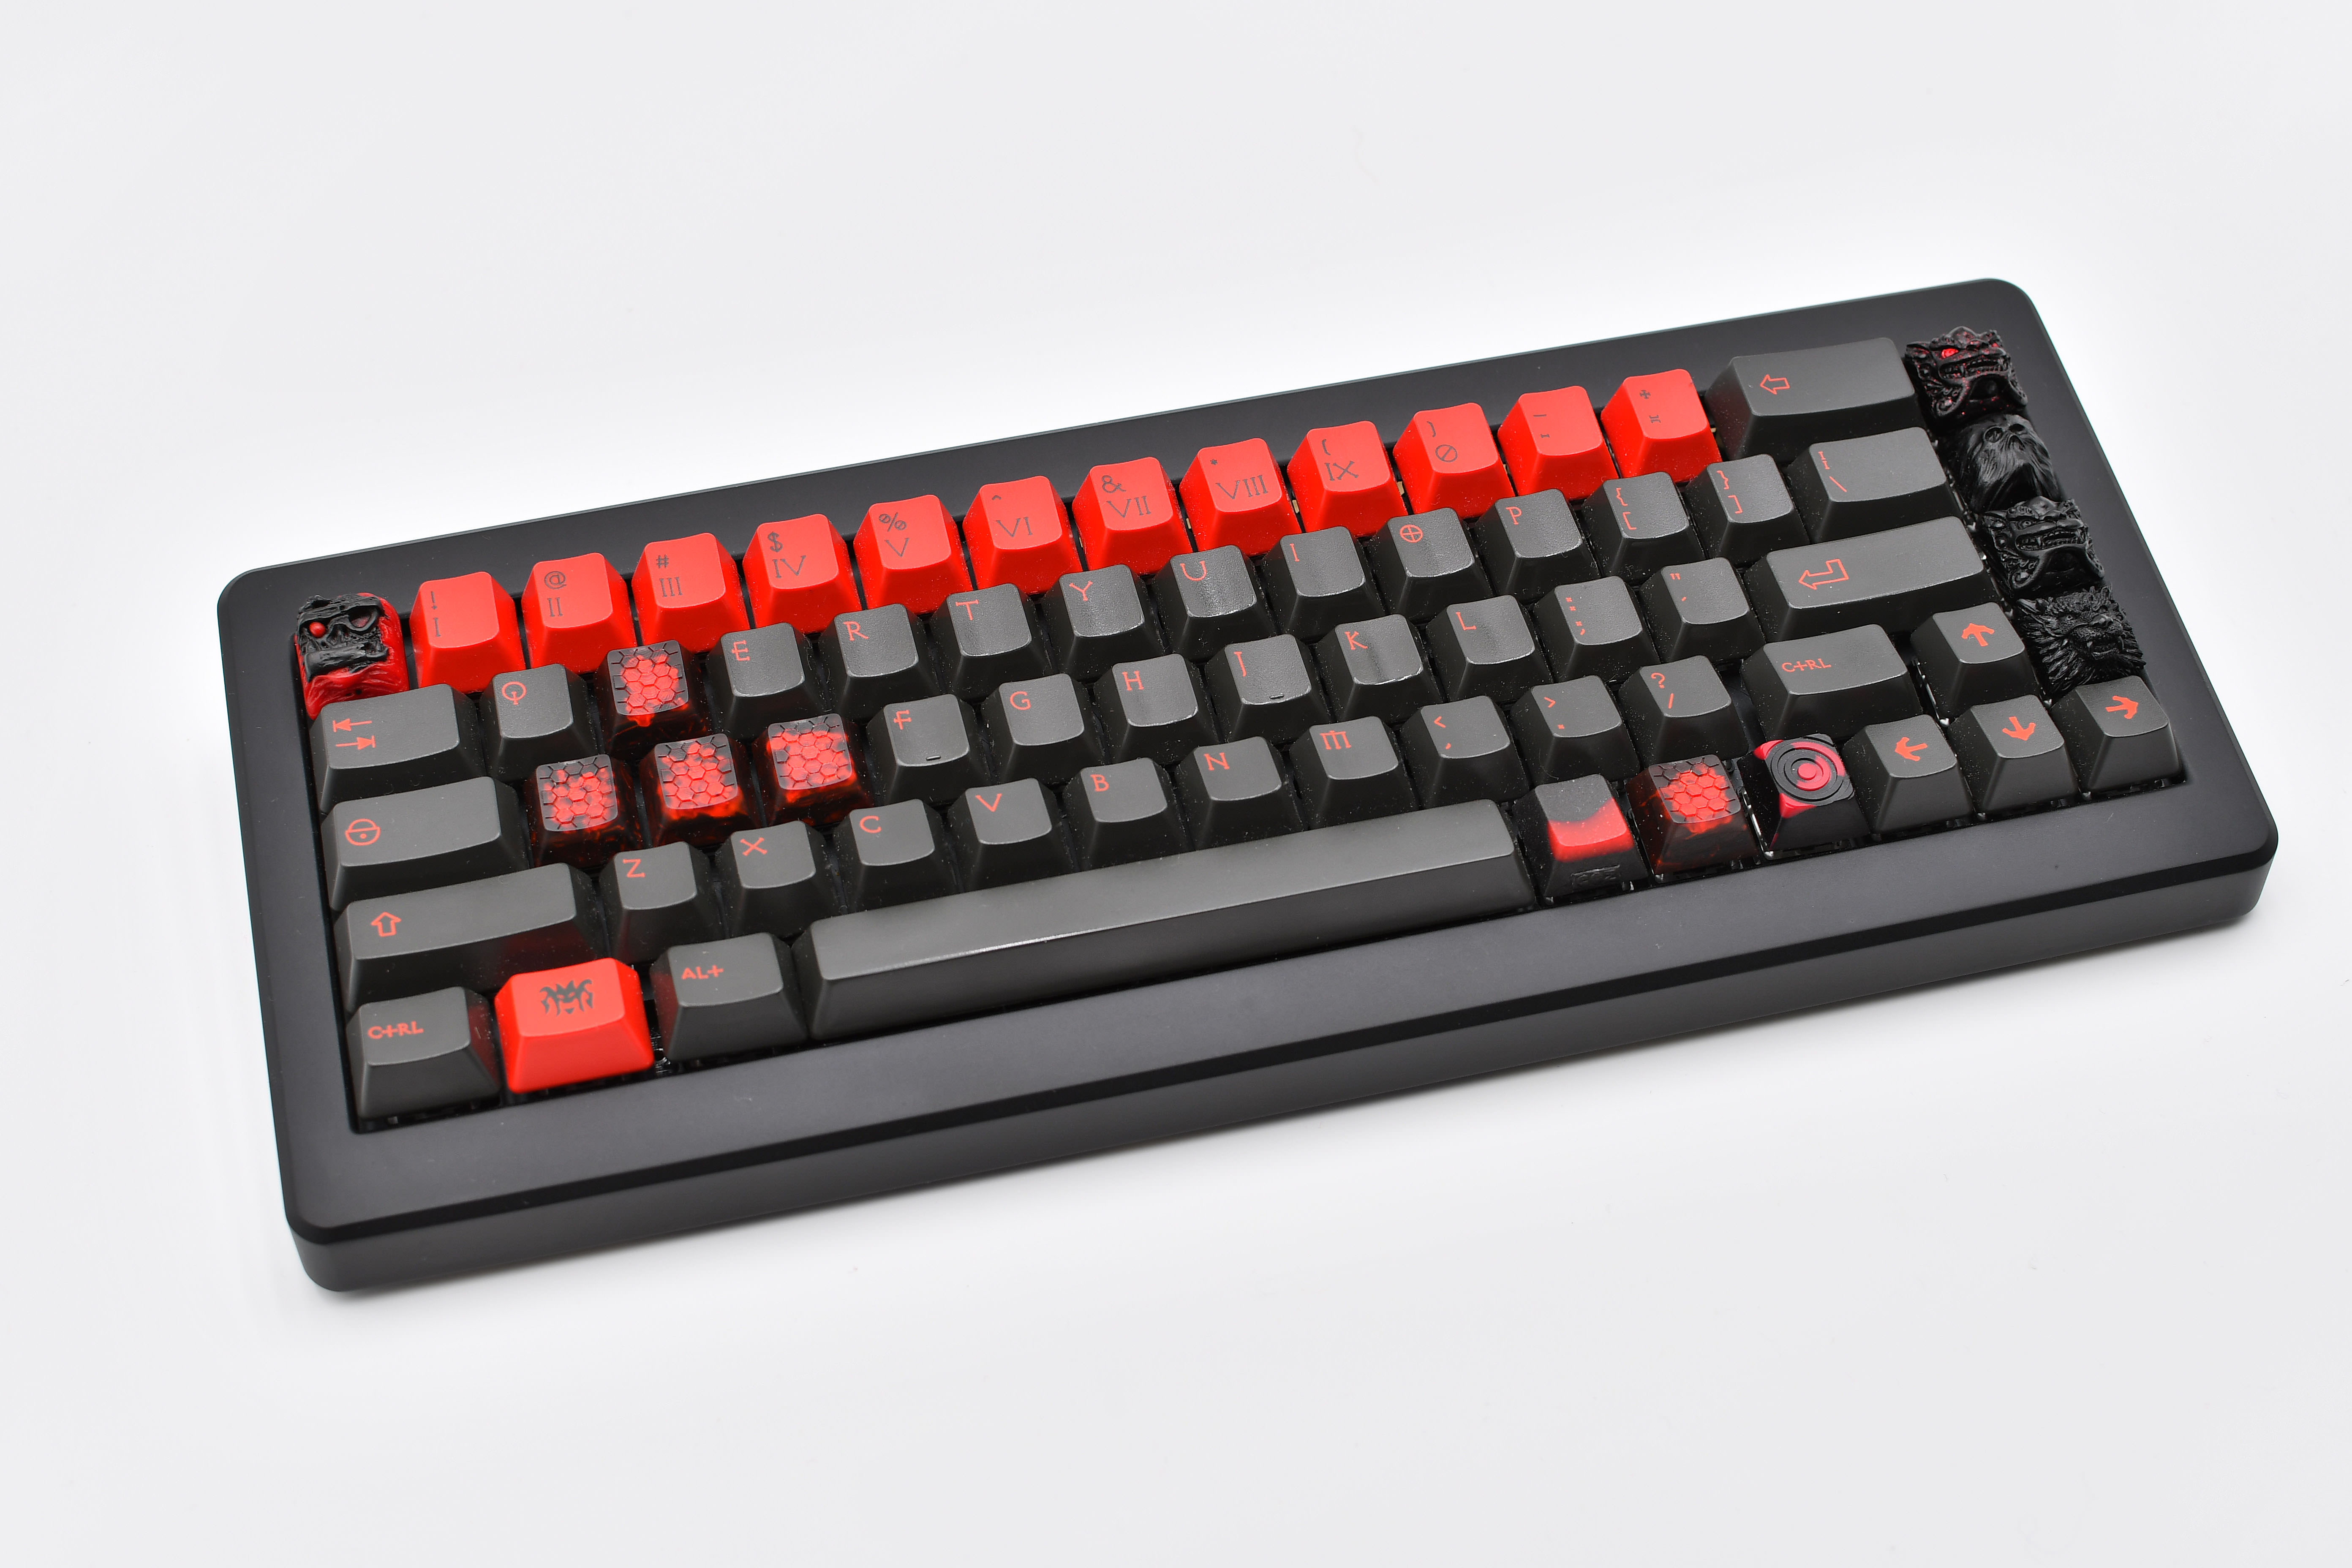 Post Your Keyboards! - Learning and discussion - KeebTalk